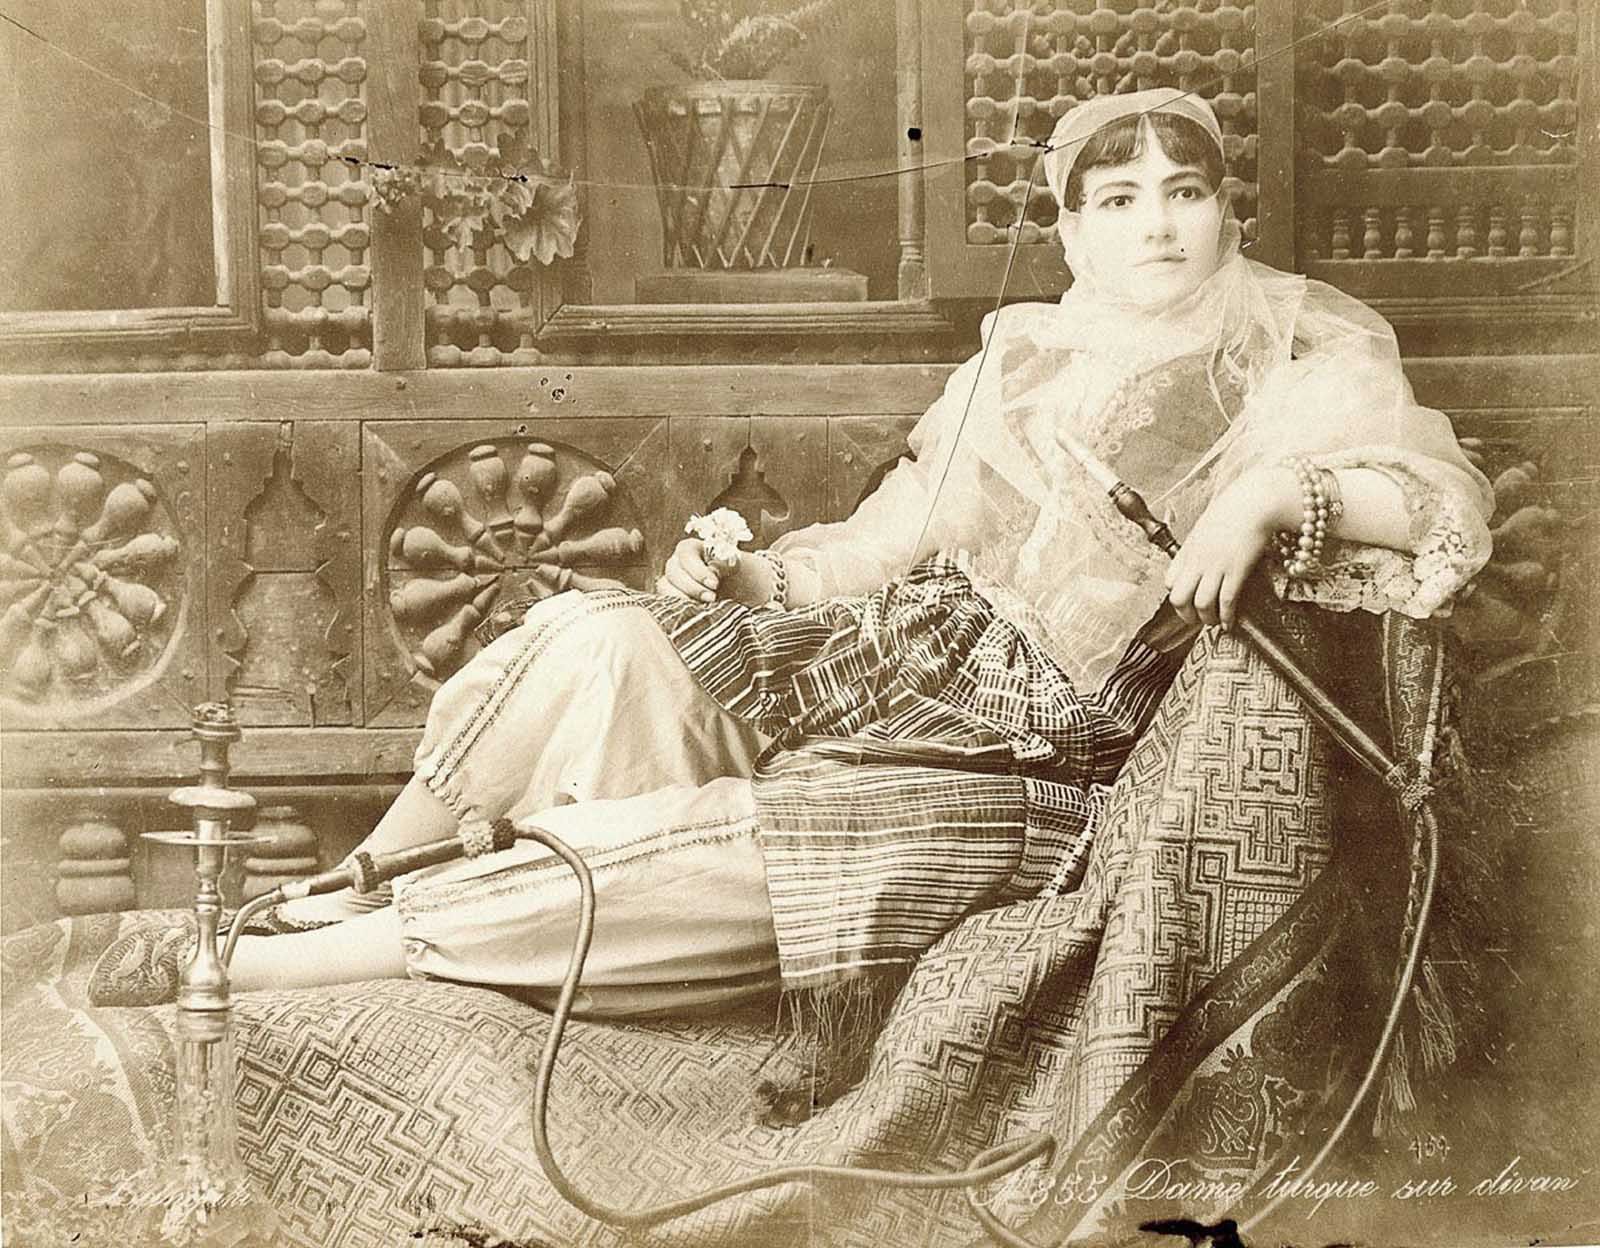 Turkish woman on couch.